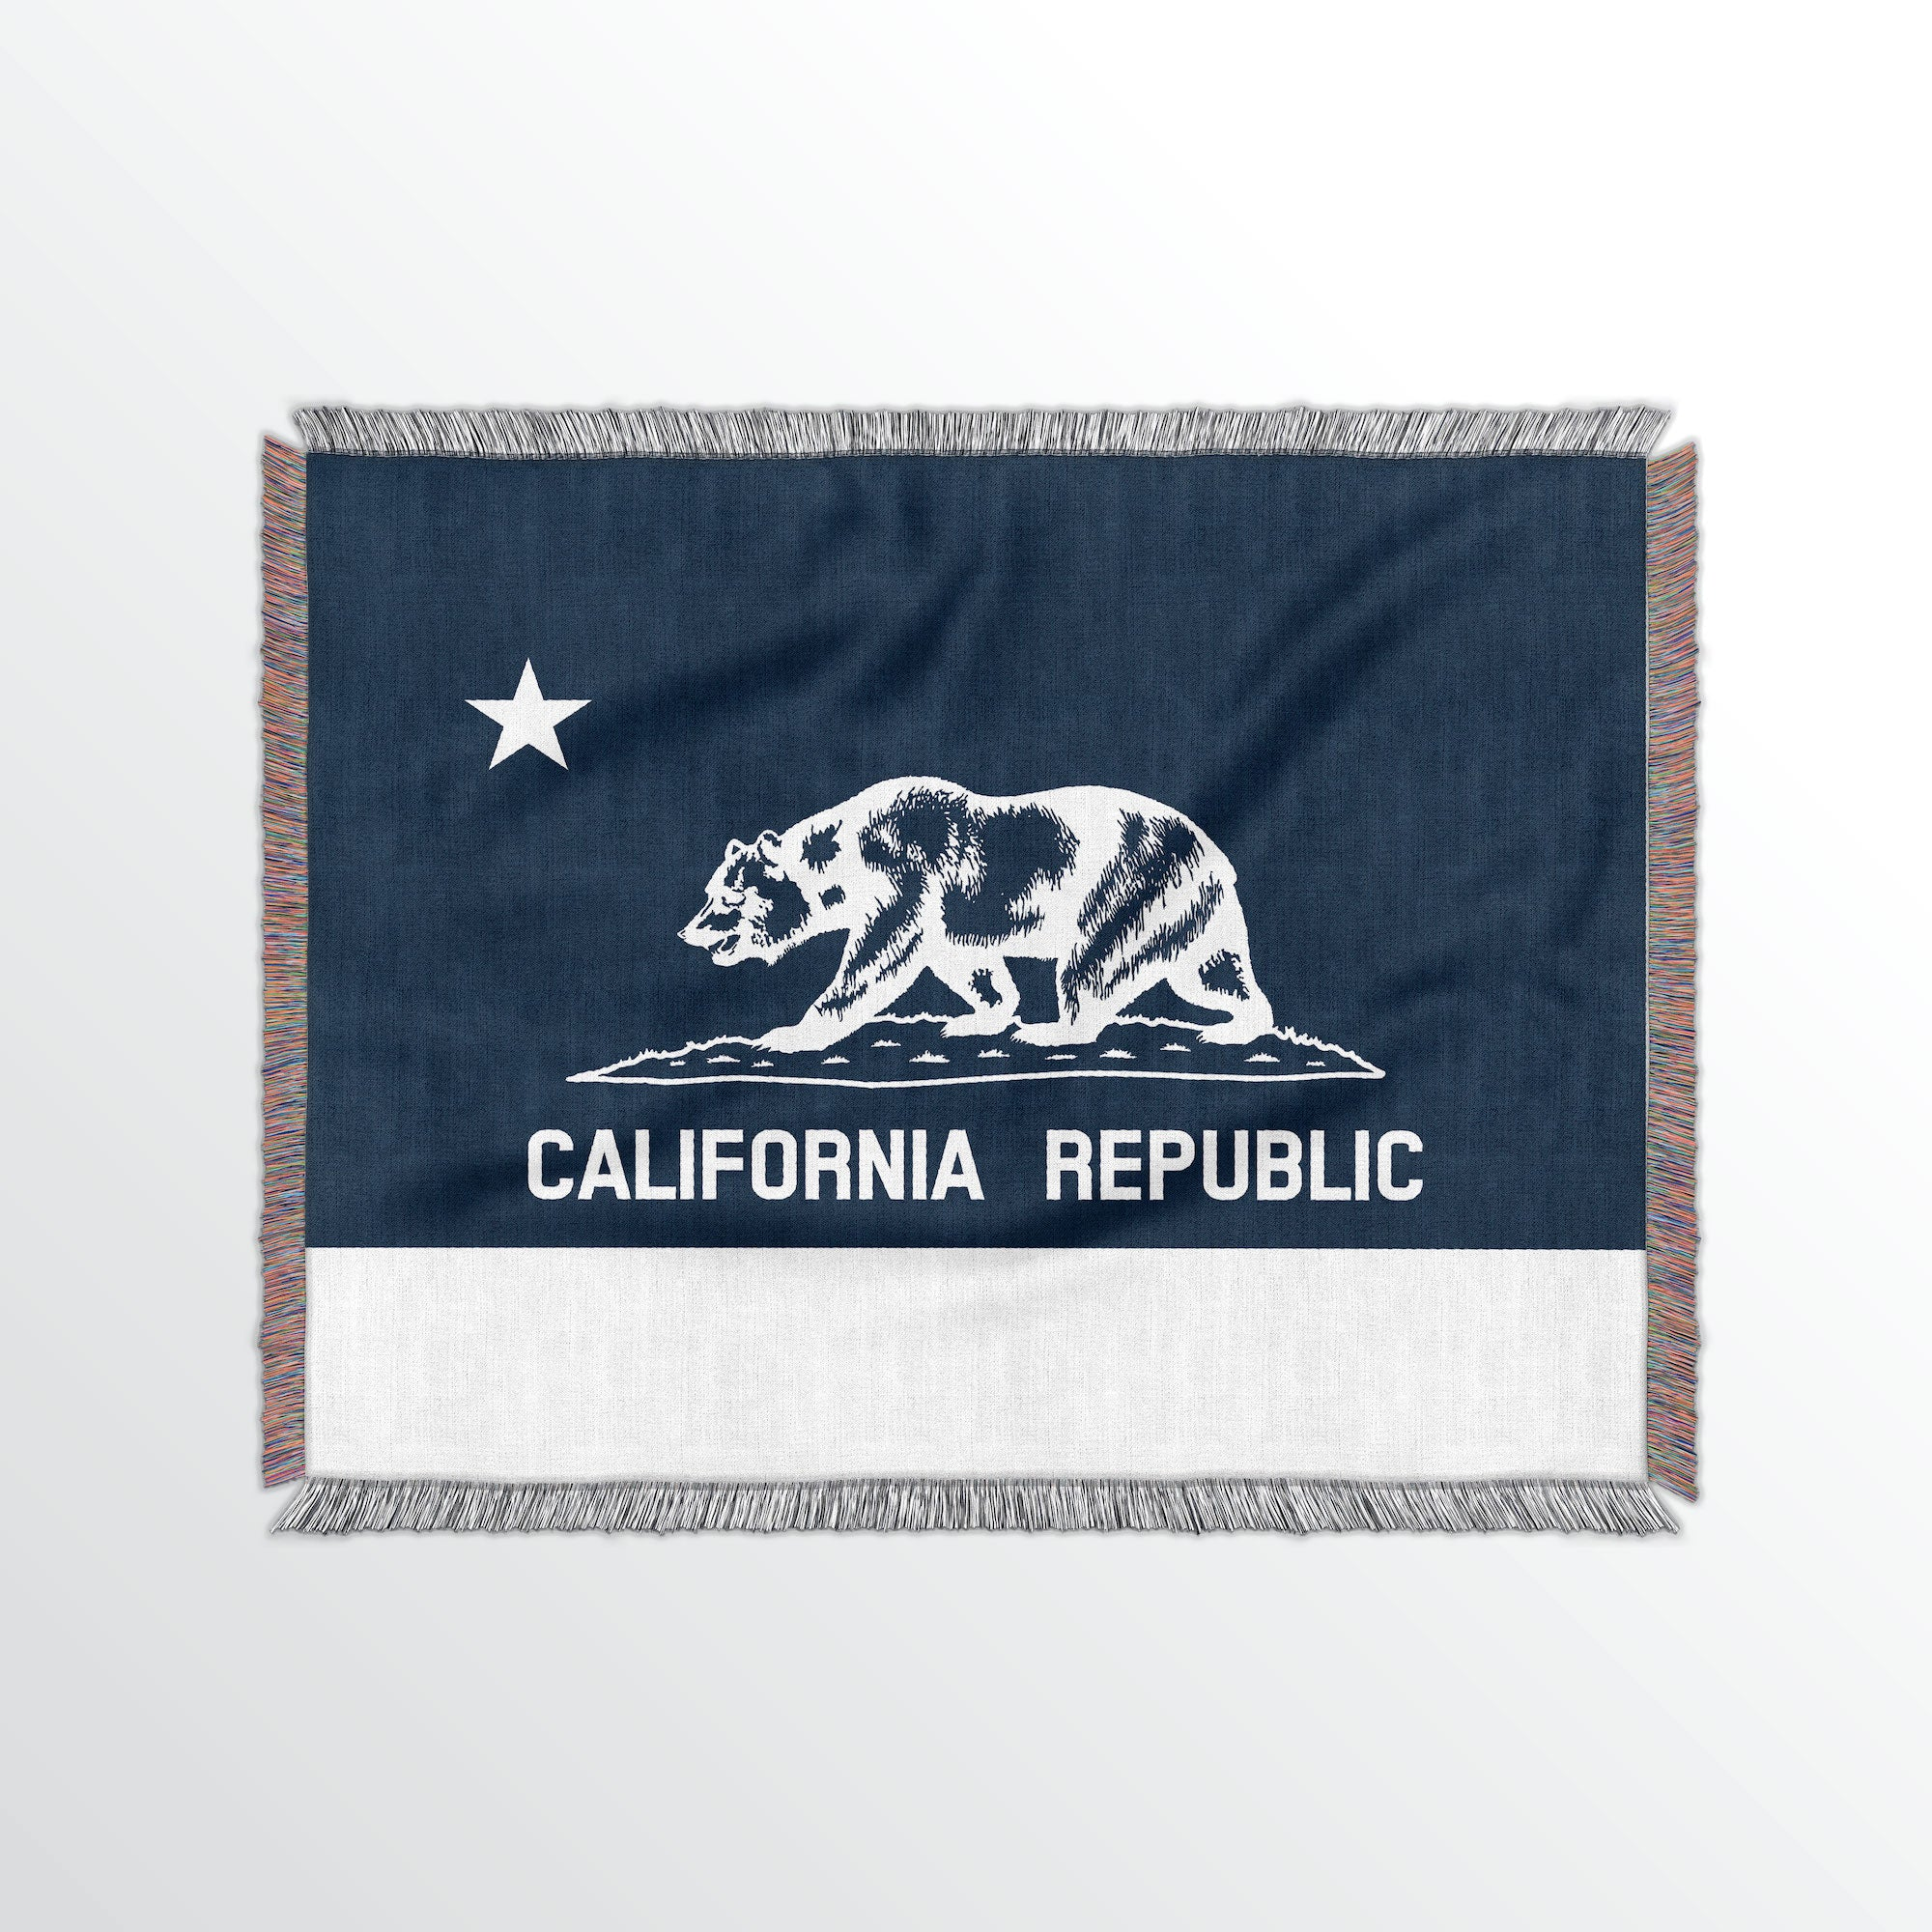 California State Woven Cotton Blanket - Point Two Design